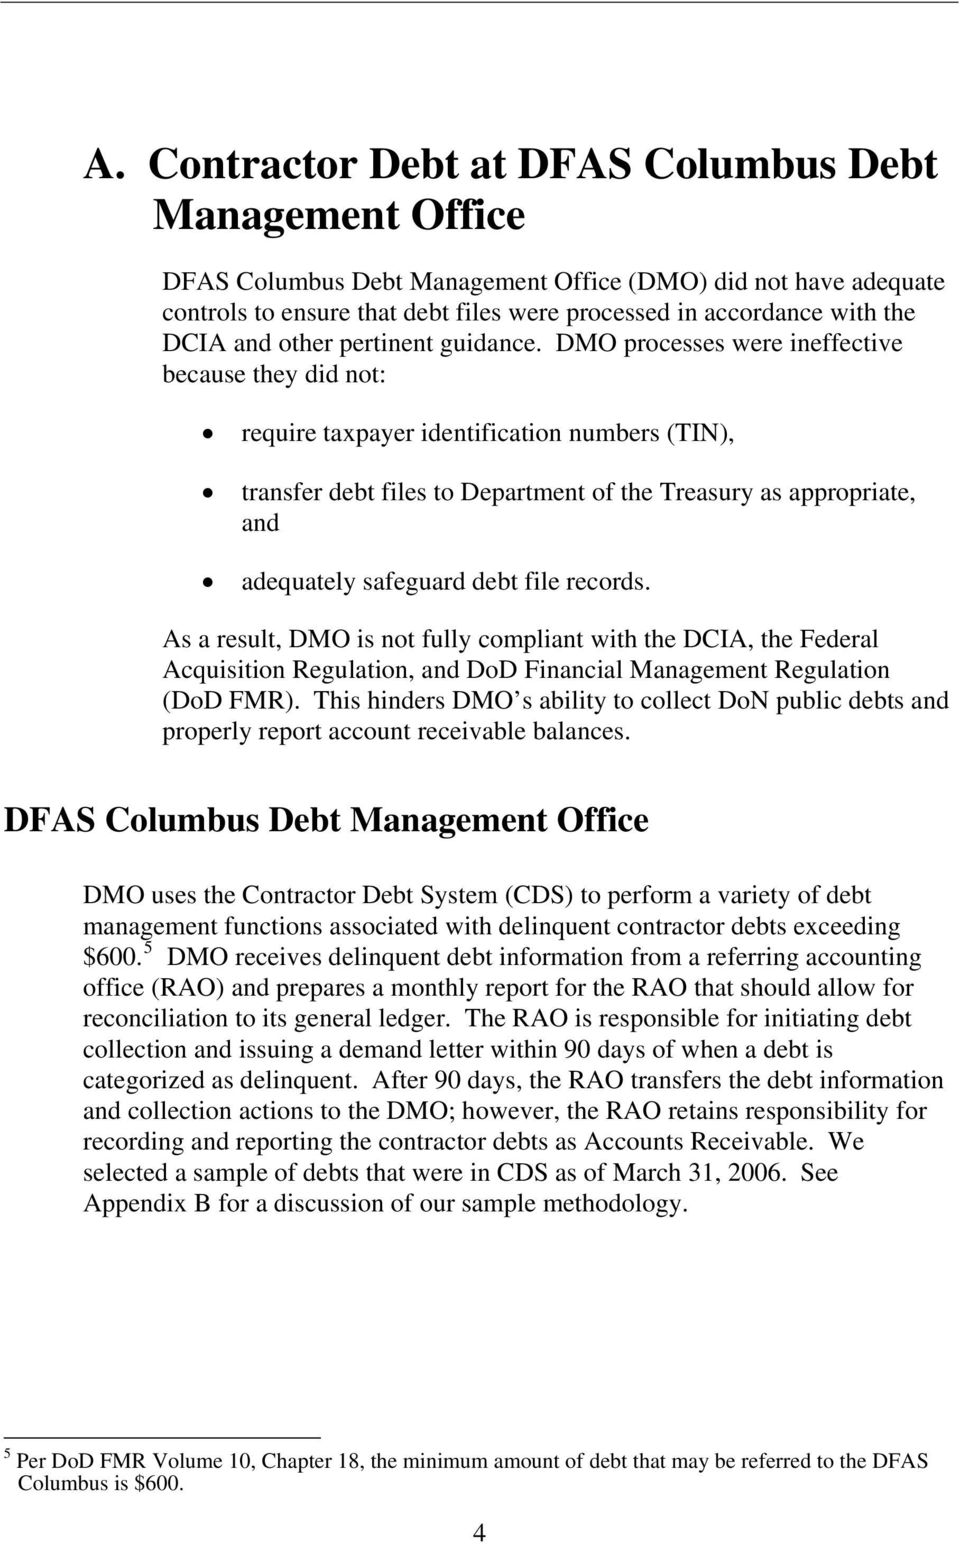 DMO processes were ineffective because they did not: require taxpayer identification numbers (TIN), transfer debt files to Department of the Treasury as appropriate, and adequately safeguard debt